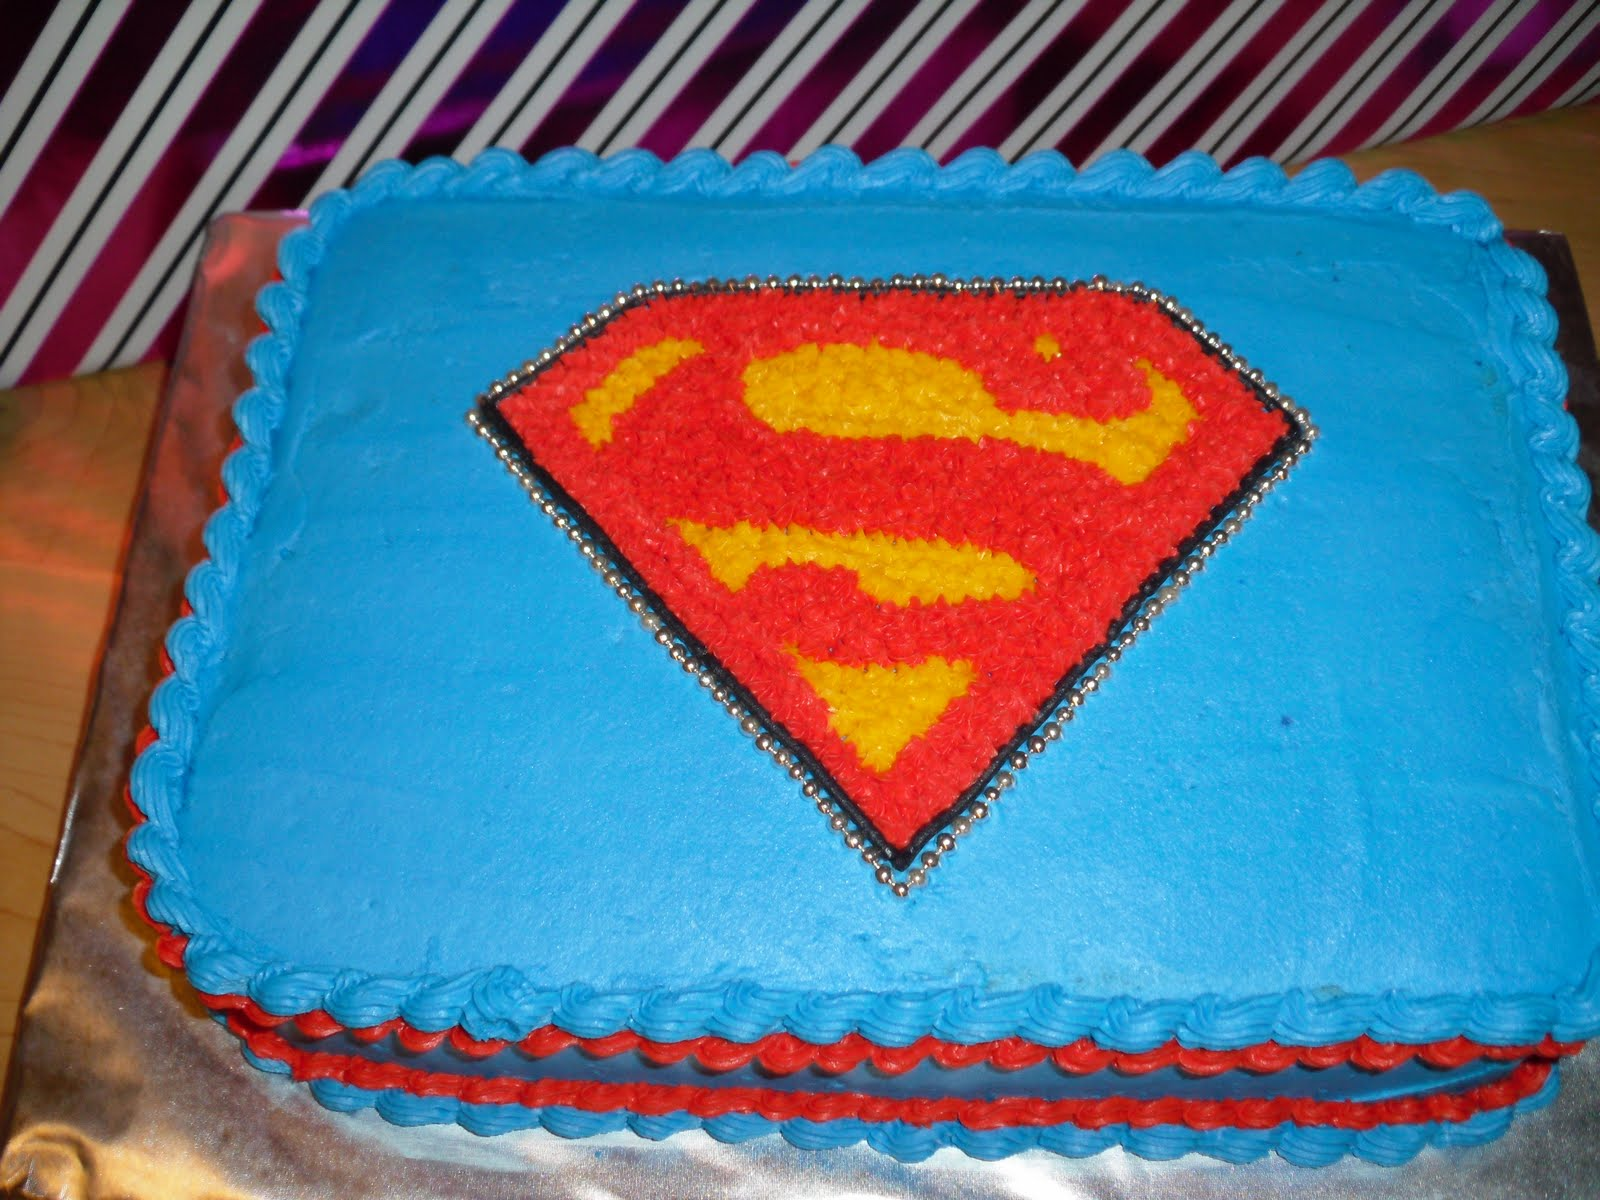 Superman Cake Design Goldilocks : Cake Designs by Steph: Superman Logo!